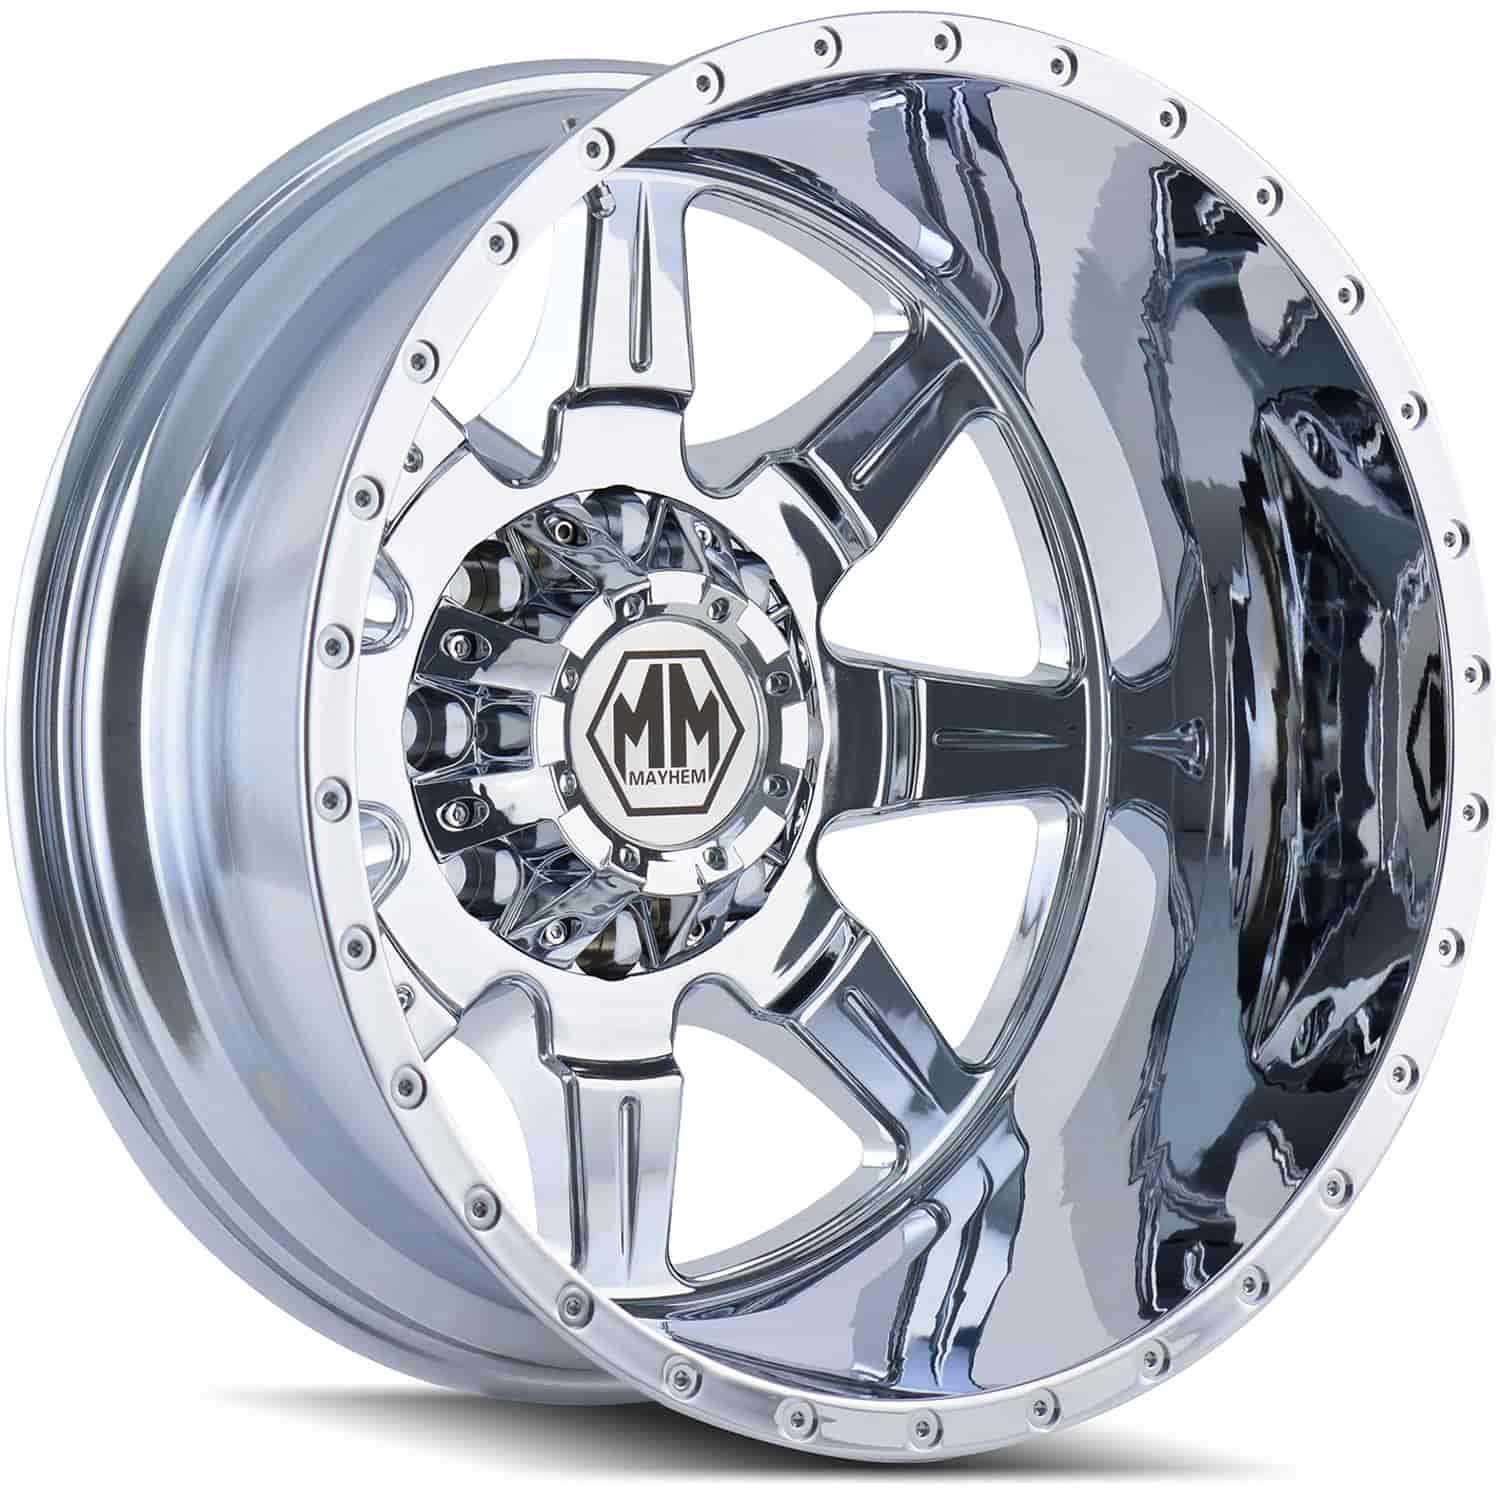 The Wheel Group 8101-22879CR